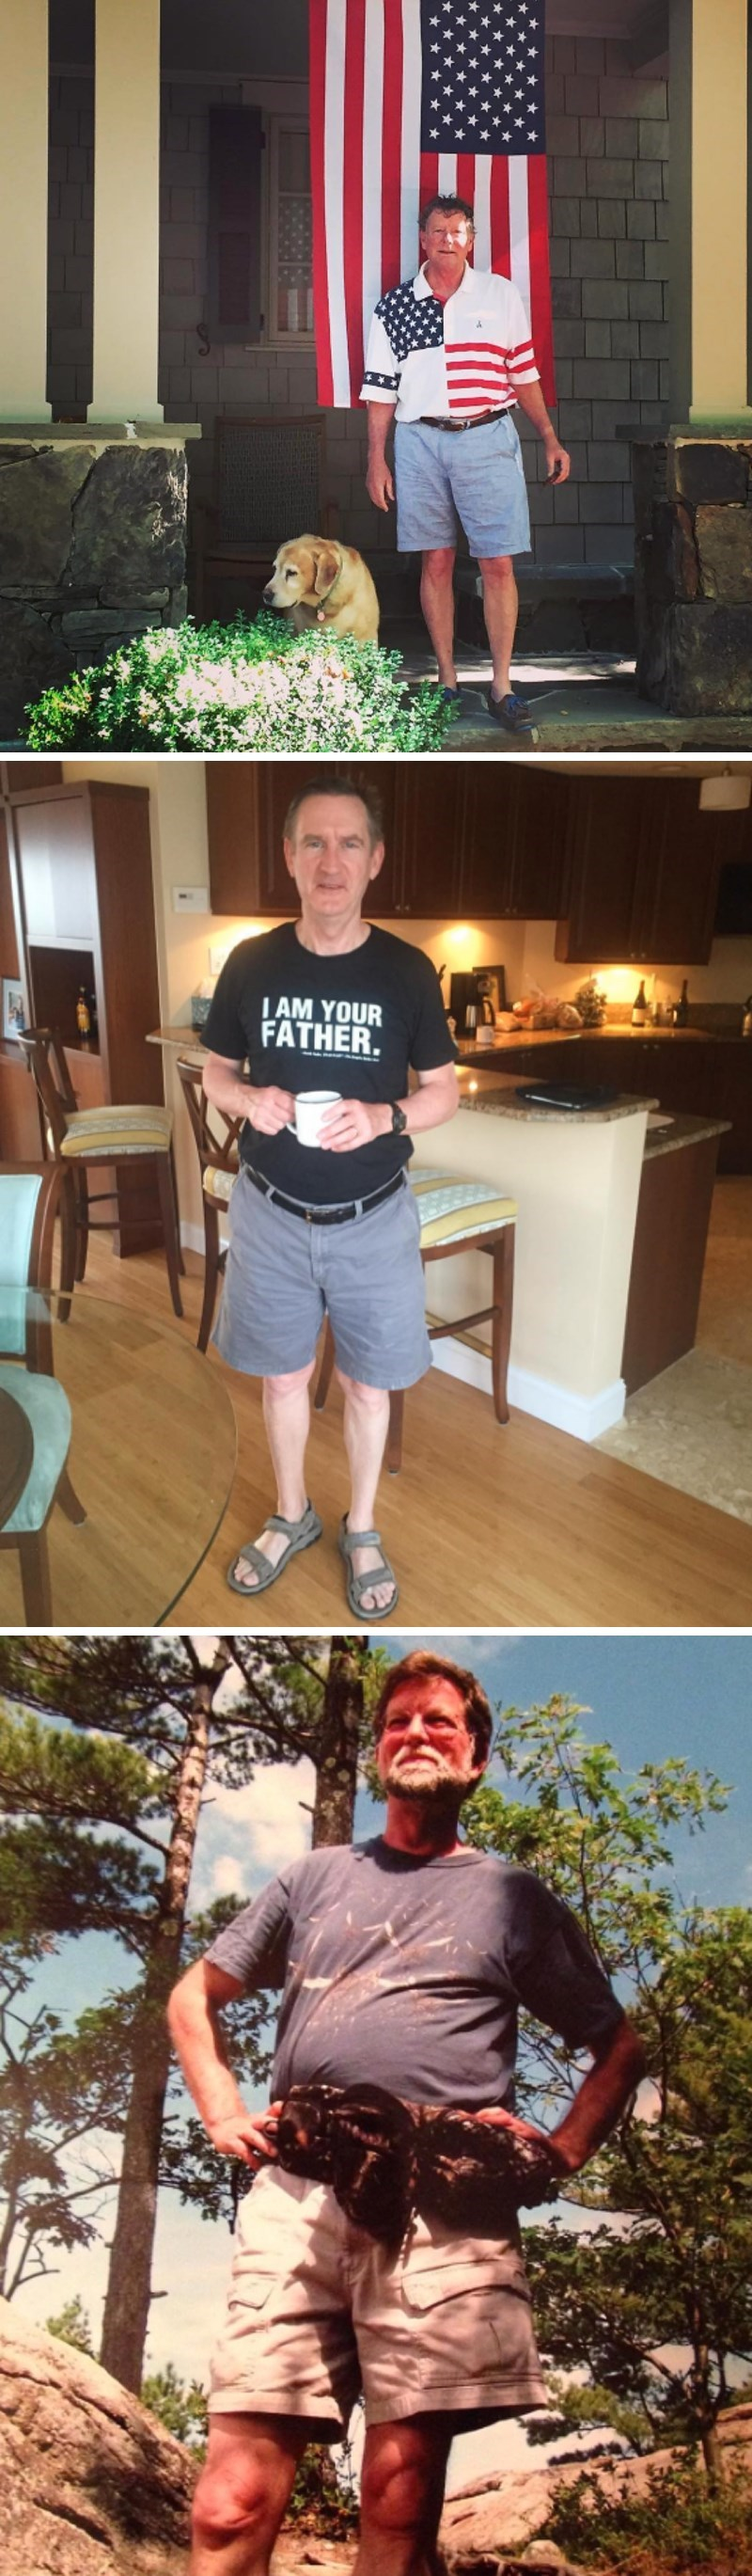 T-shirt - IAM YOUR FATHER.